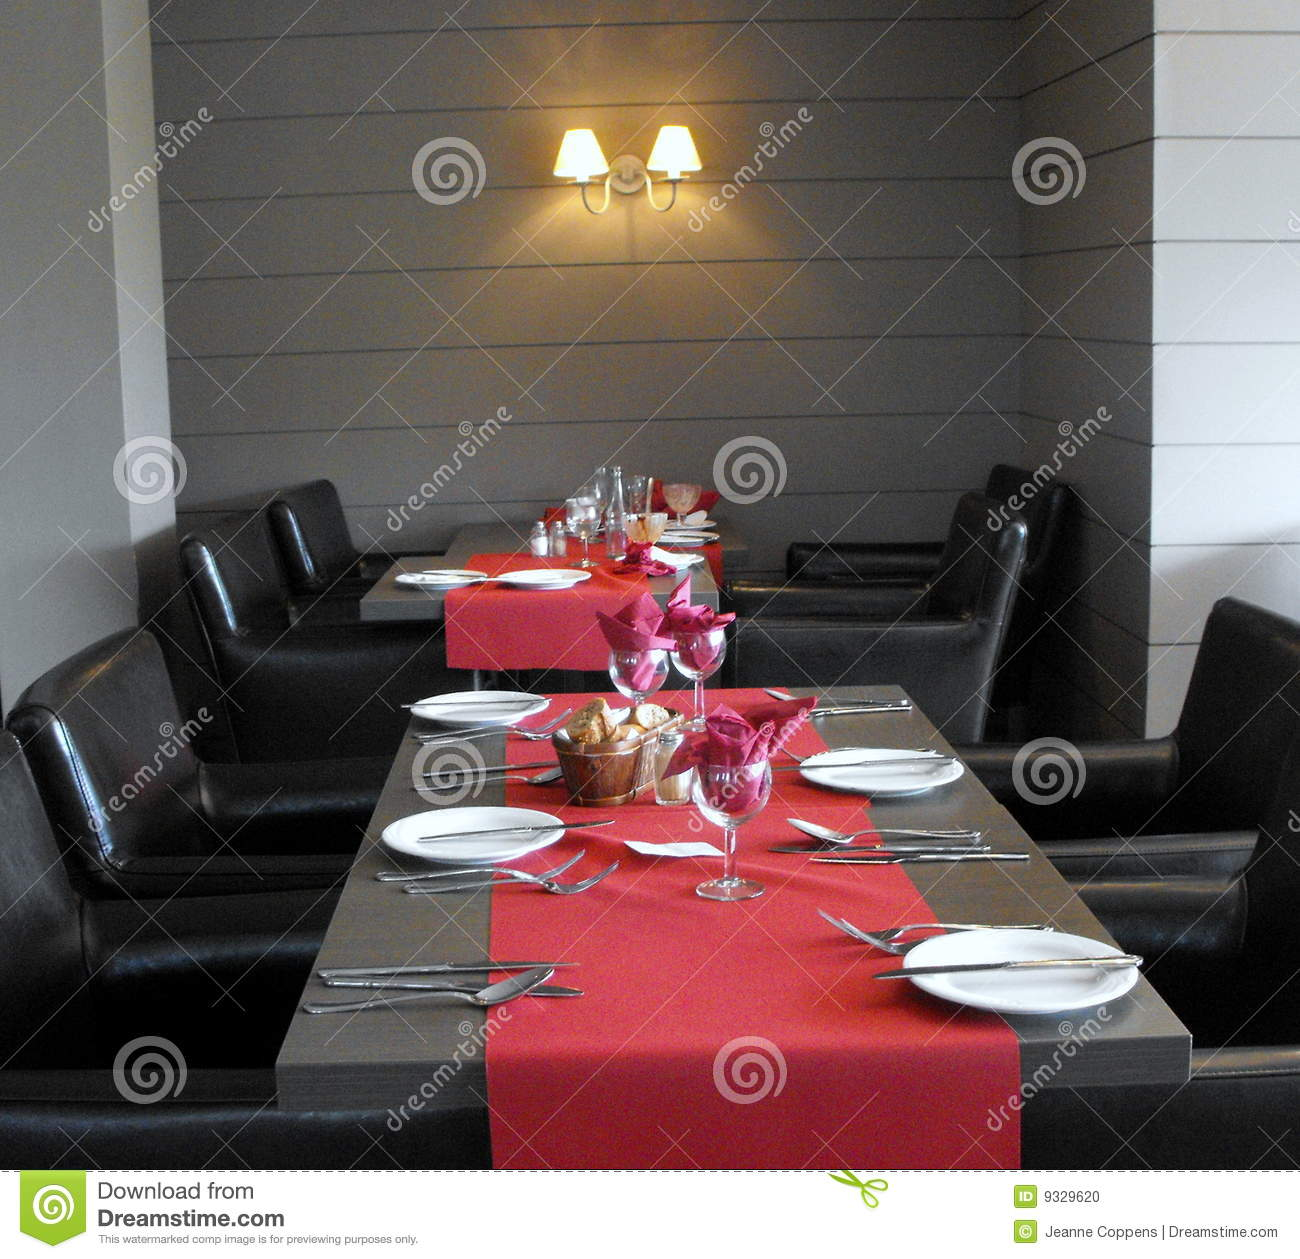 Modern restaurant table setting - A Table Setting At Restaurant Stock Photo